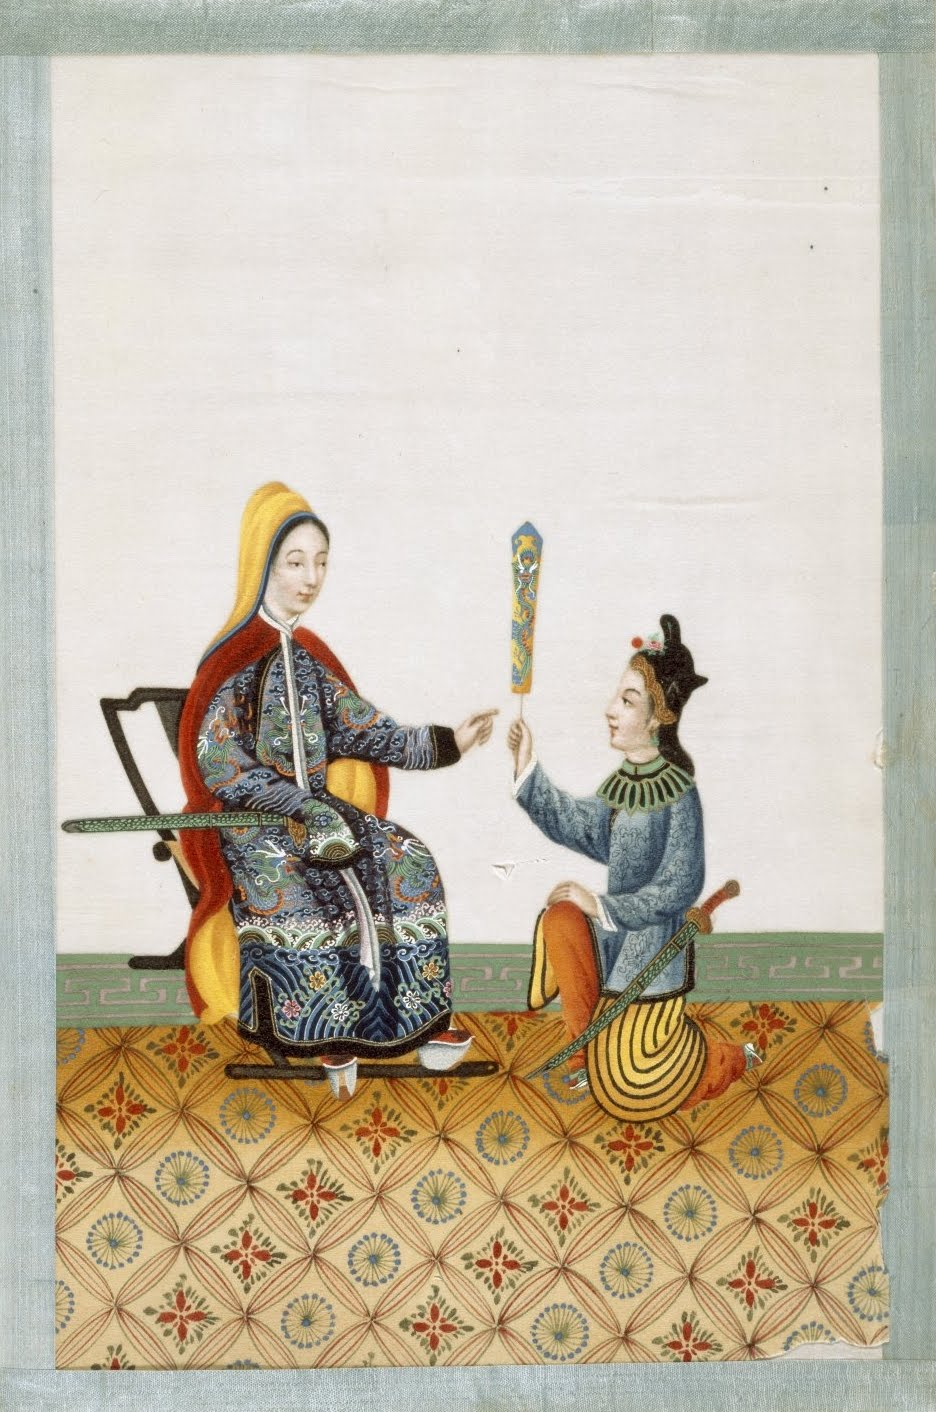 Chinese Court servant with noblewoman - 19th cent.